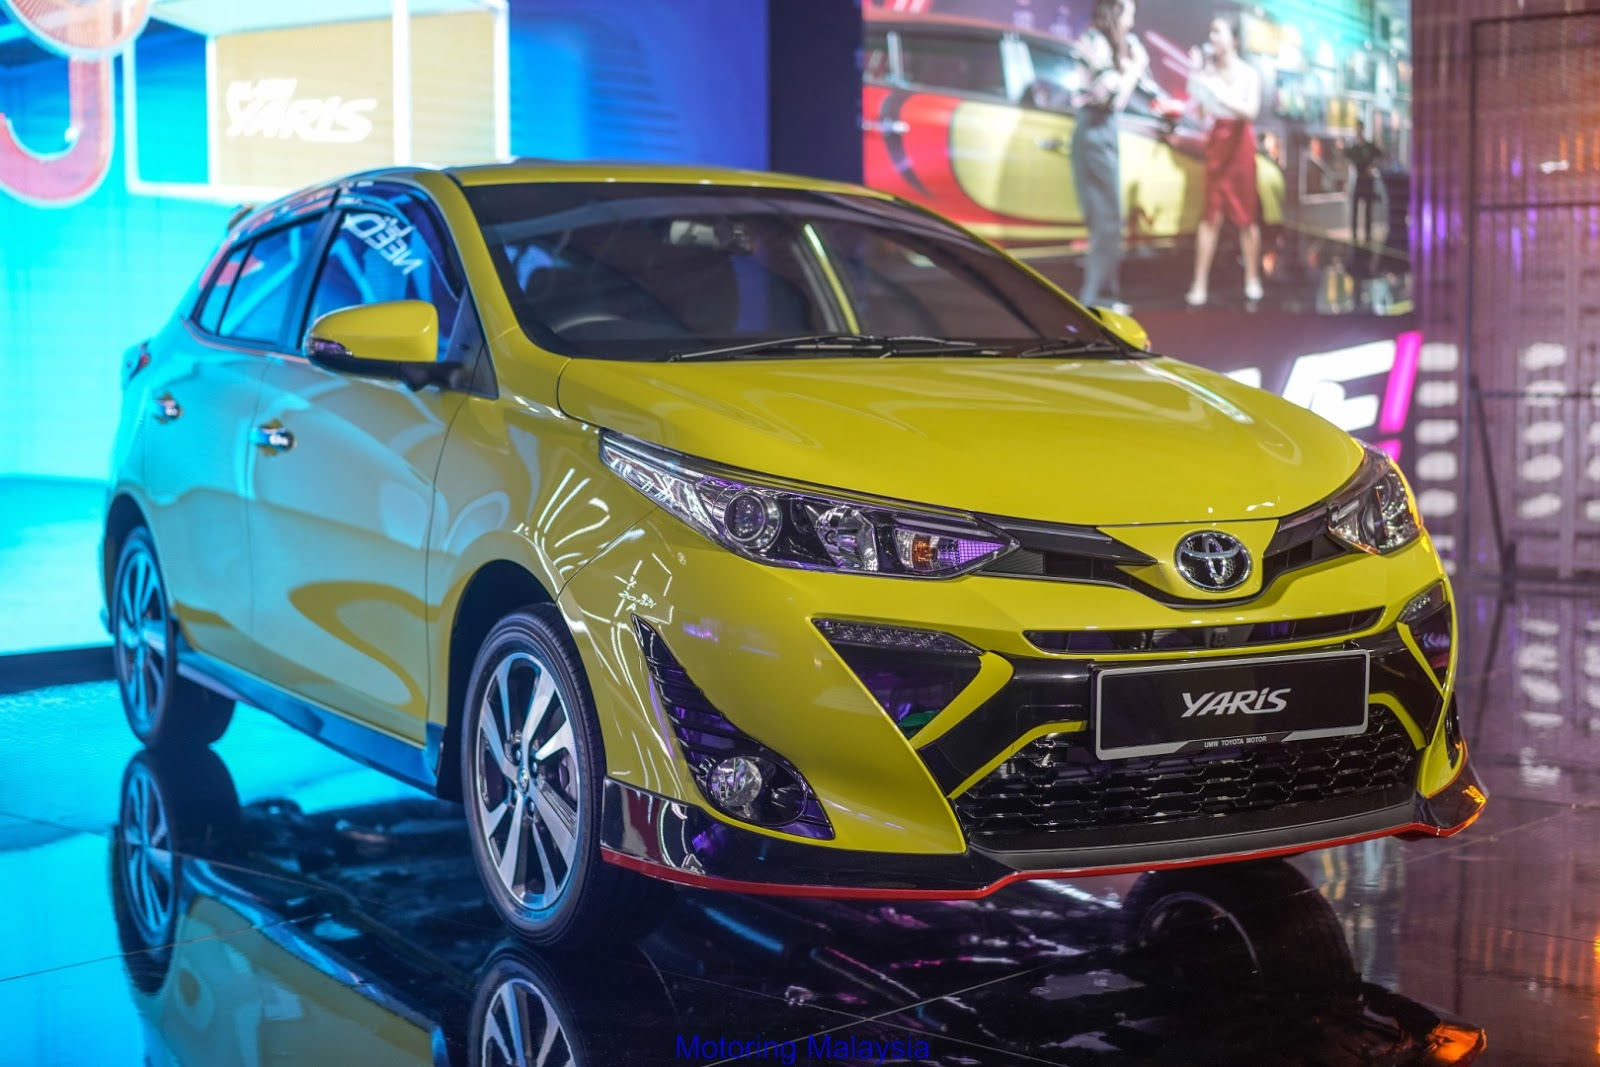 Motoring Malaysia Toyota Yaris Launched Prices Start At Rm70 888 Making This A Truly Affordable Hatchback For Malaysians